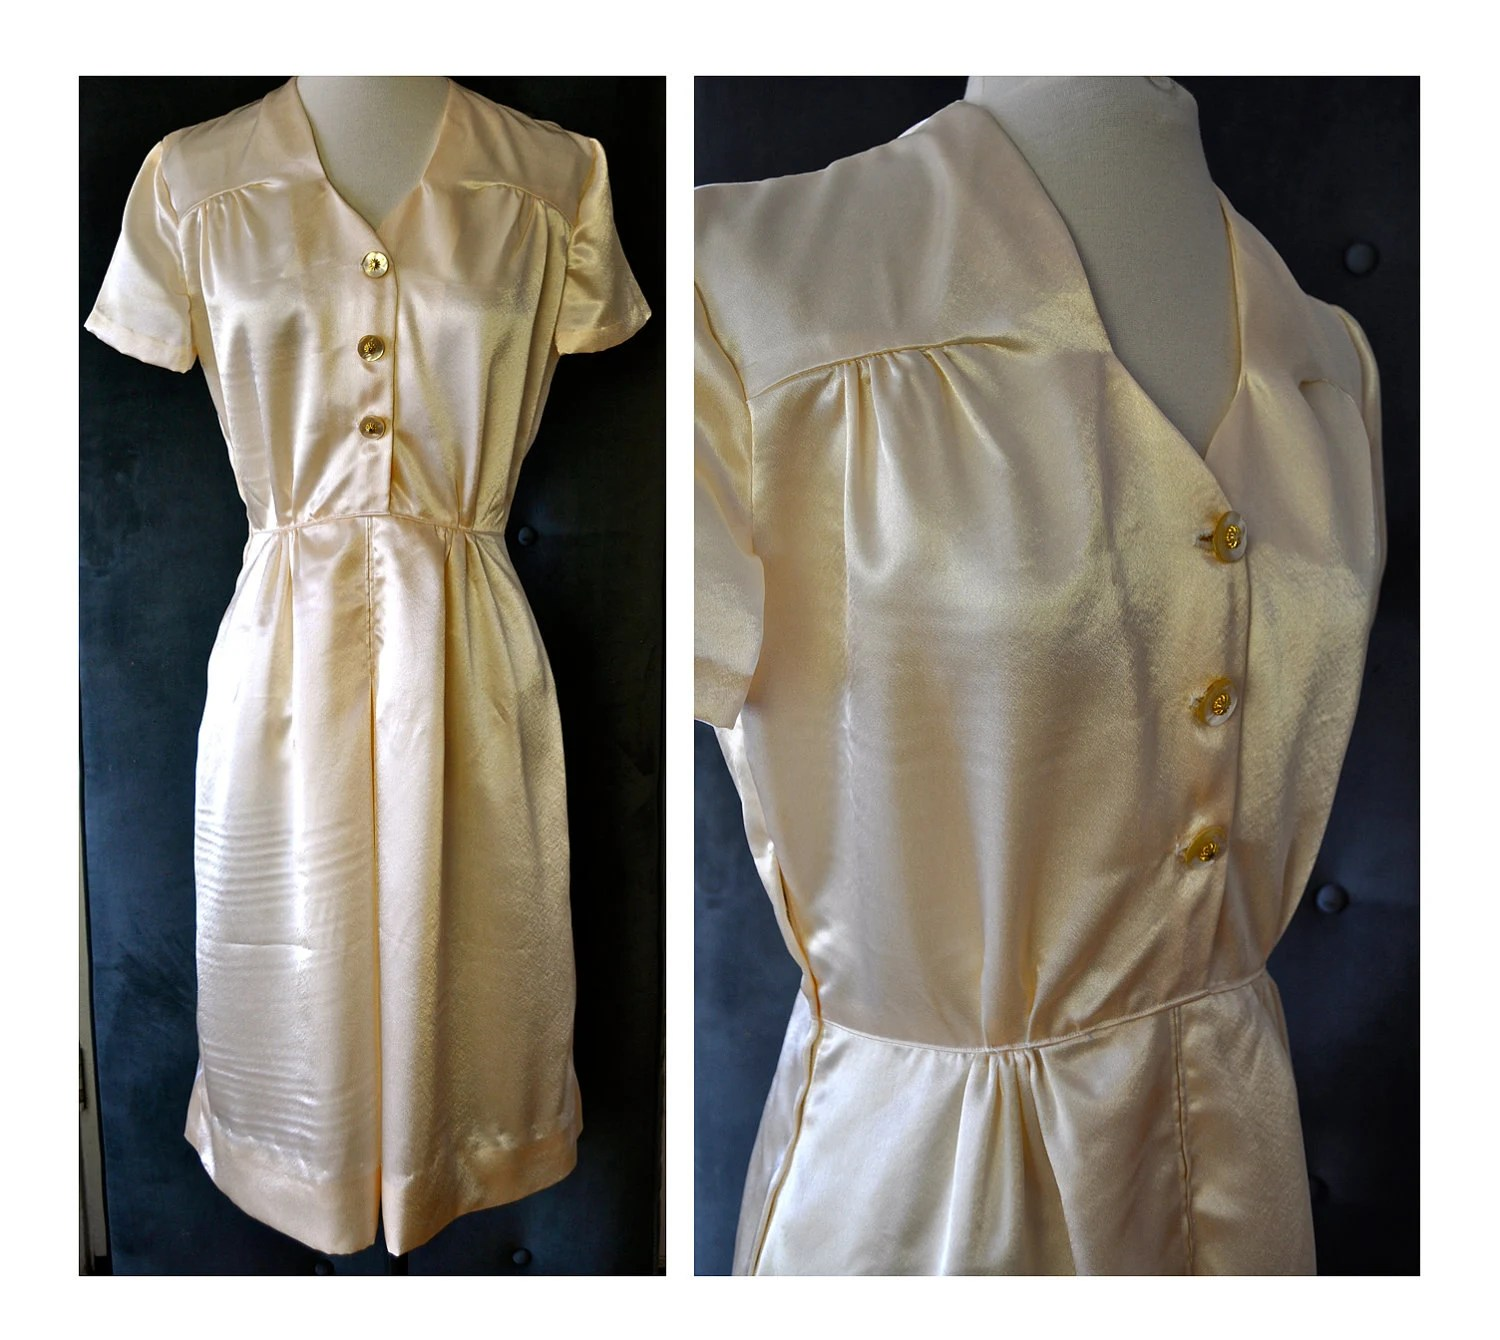 Glamorous 1940's Style Wedding Party Dress in Ivory Crepe Back Satin Made by Anjou